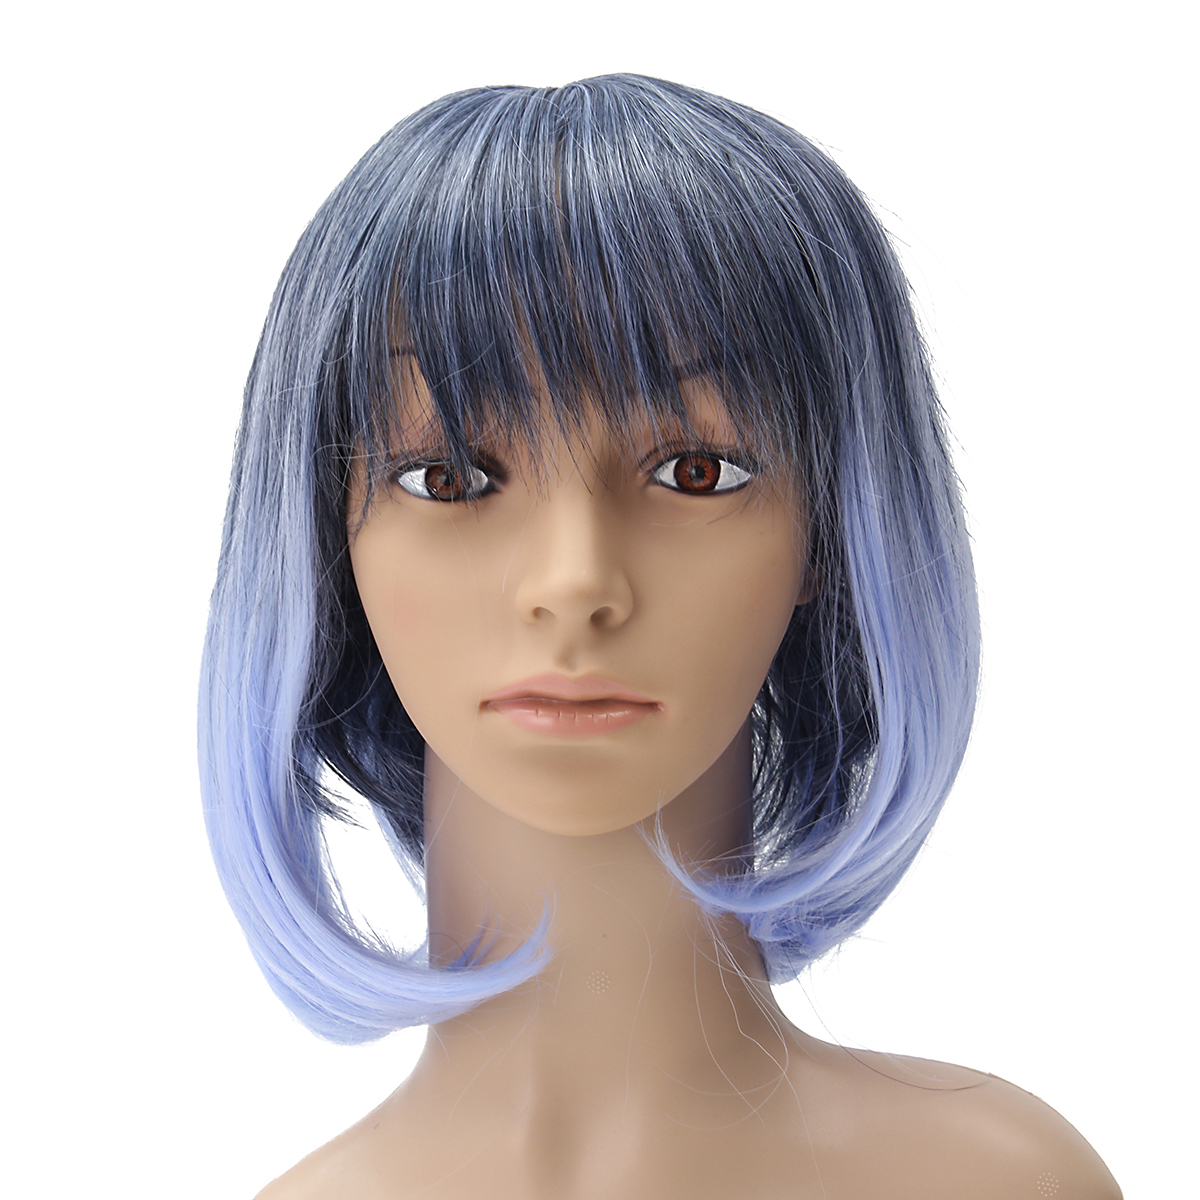 35-40cm Blue Gradient Cosplay Wig Woman Short Curly Hair Anime Natural Role Play Capless